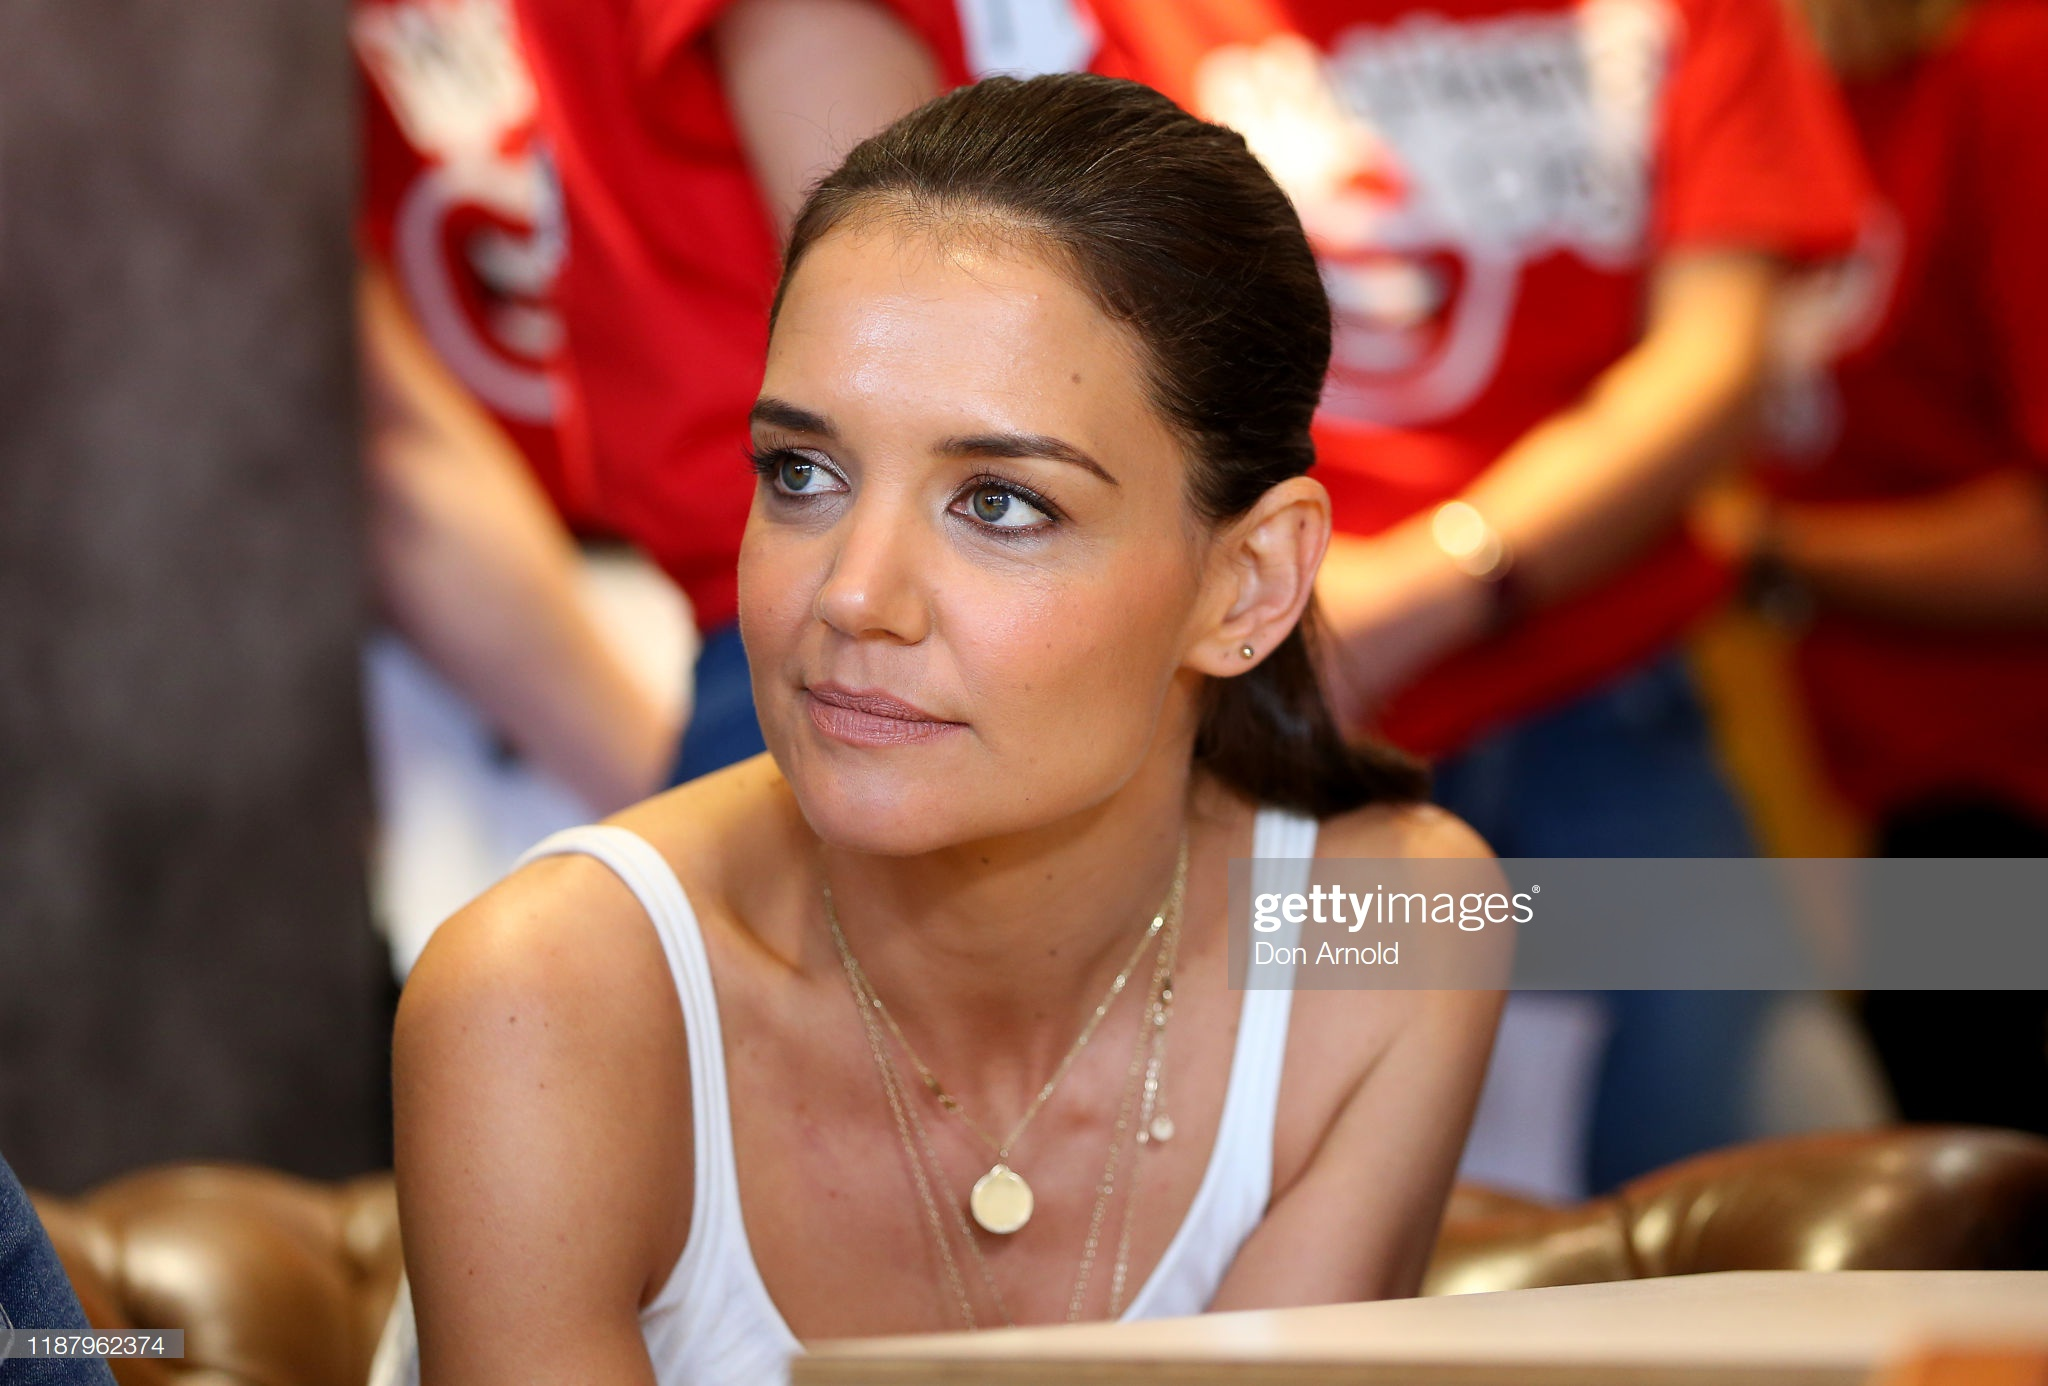 Katie Holmes khoe dang tuoi 42 hinh anh 12 gettyimages_1187962374_2048x2048.jpg